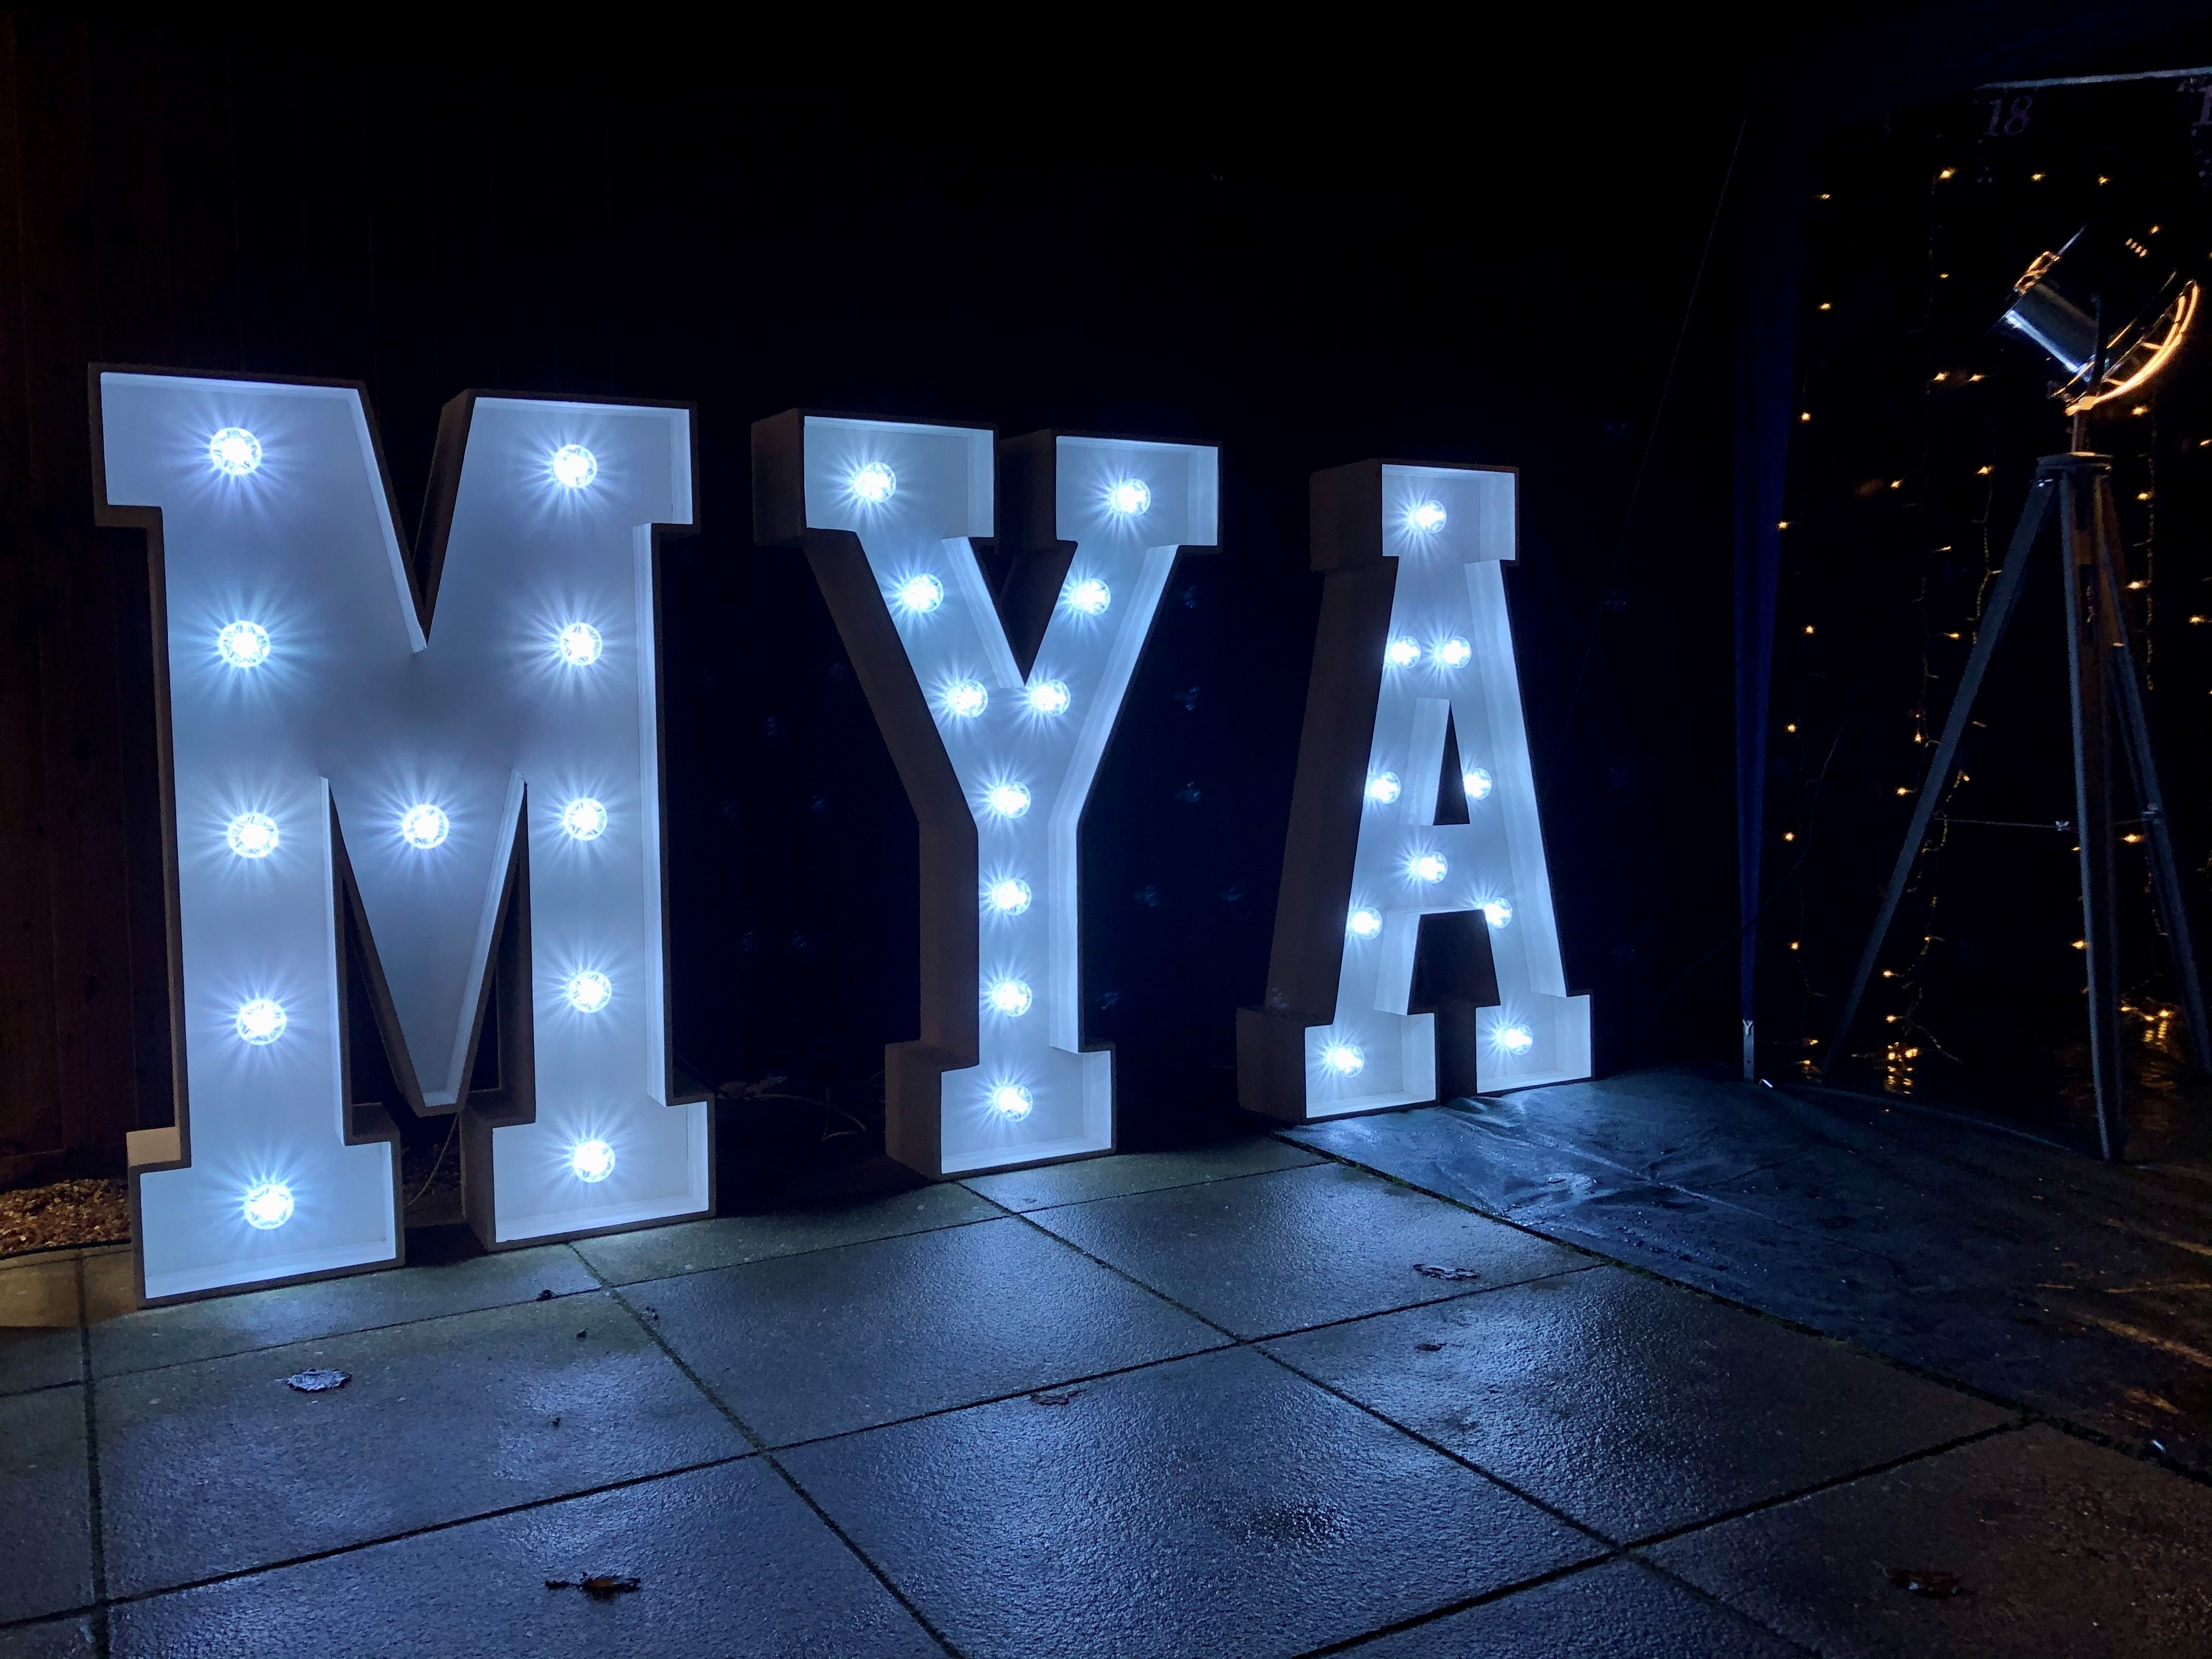 Light Up Letter Hire in Hertfordshire